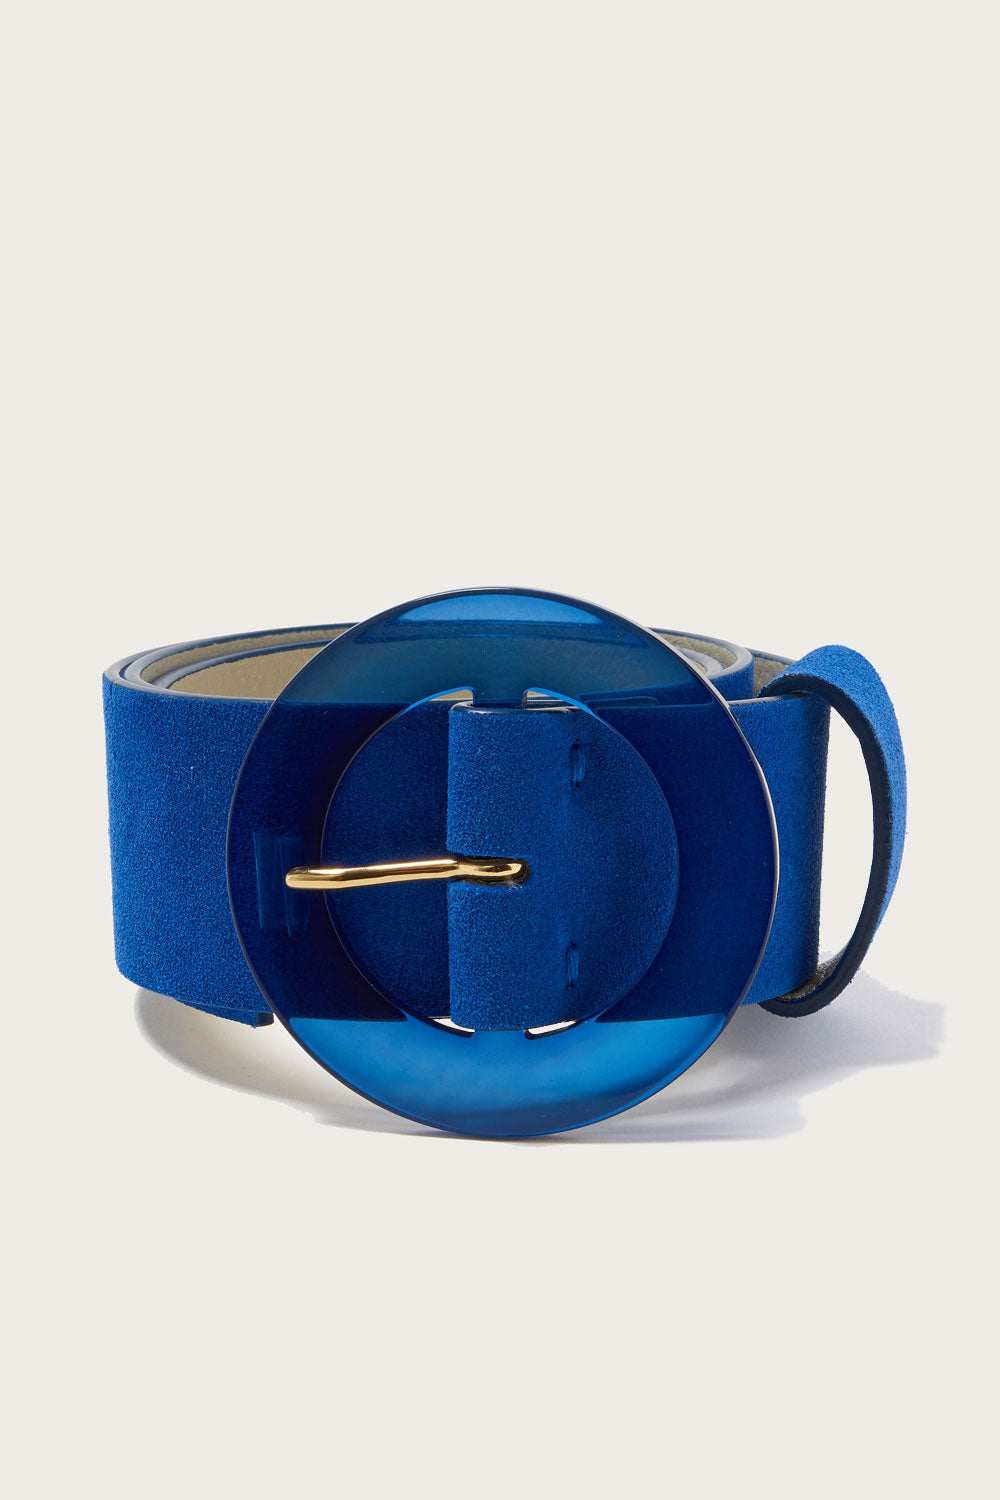 *Pre-Order* Louise Belt in Electric Blue